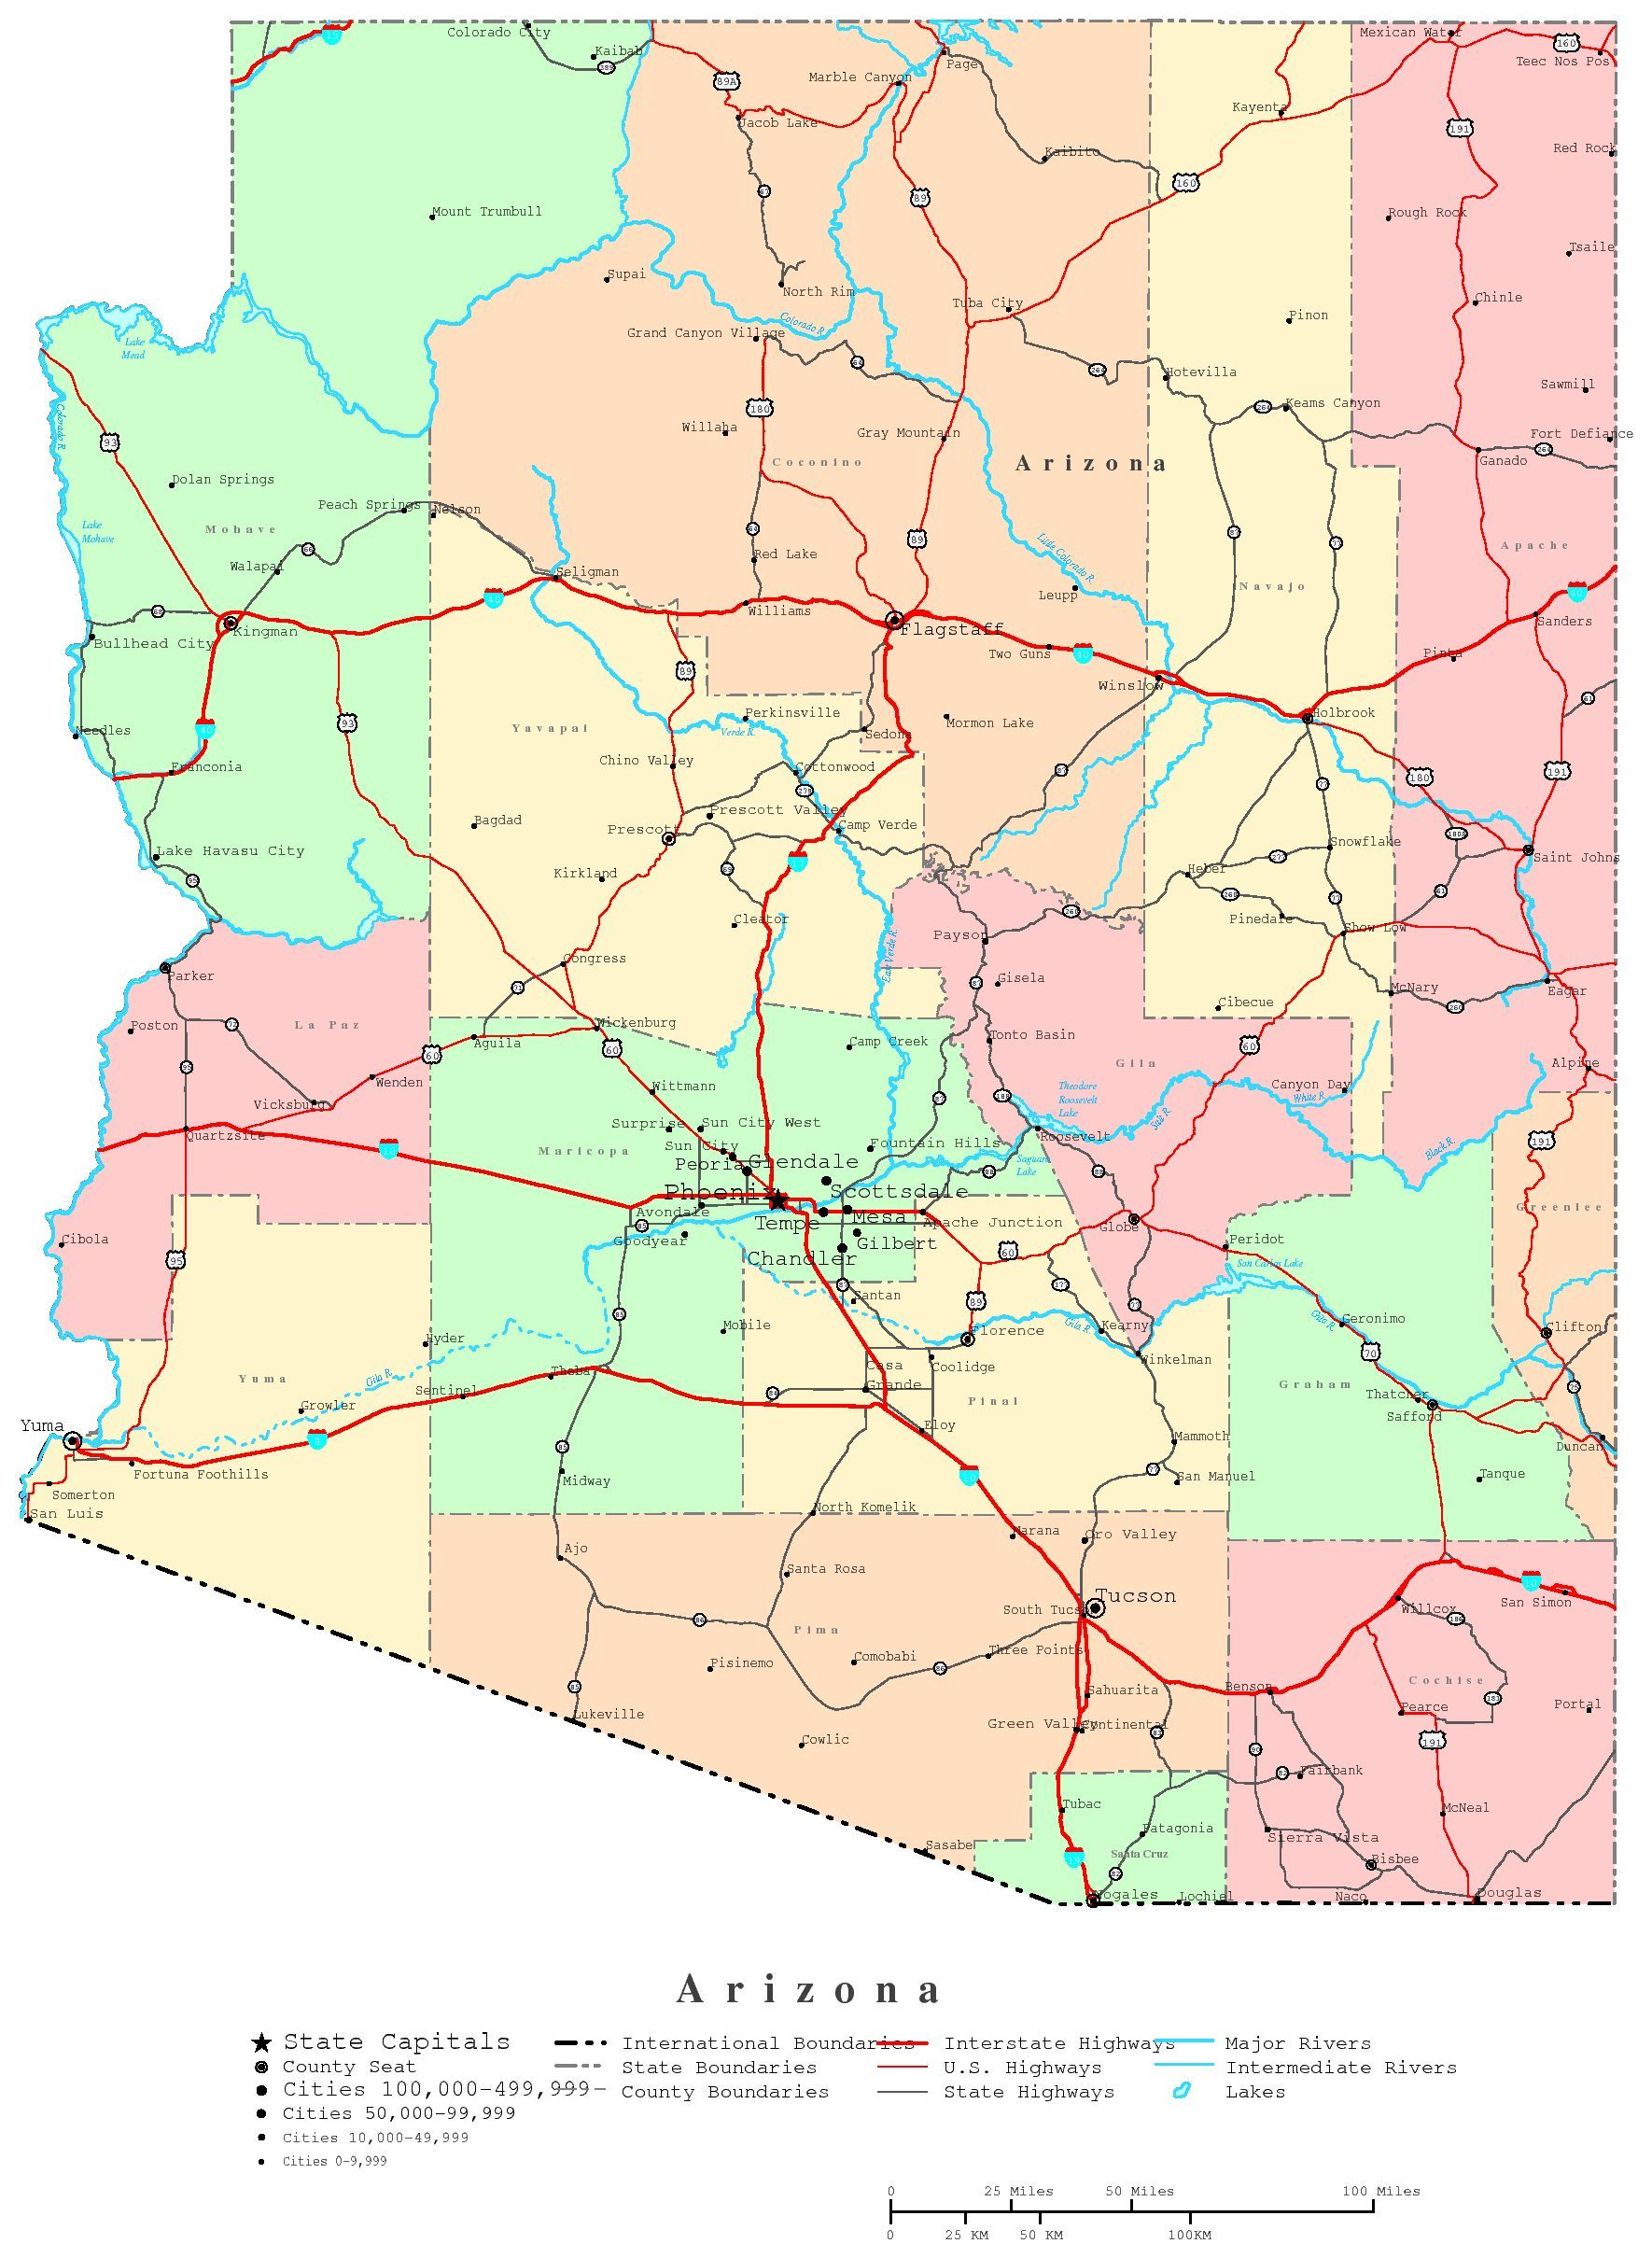 Arizona Map Printable Arizona Map Arizona AZ Pinterest - Road map of arizona